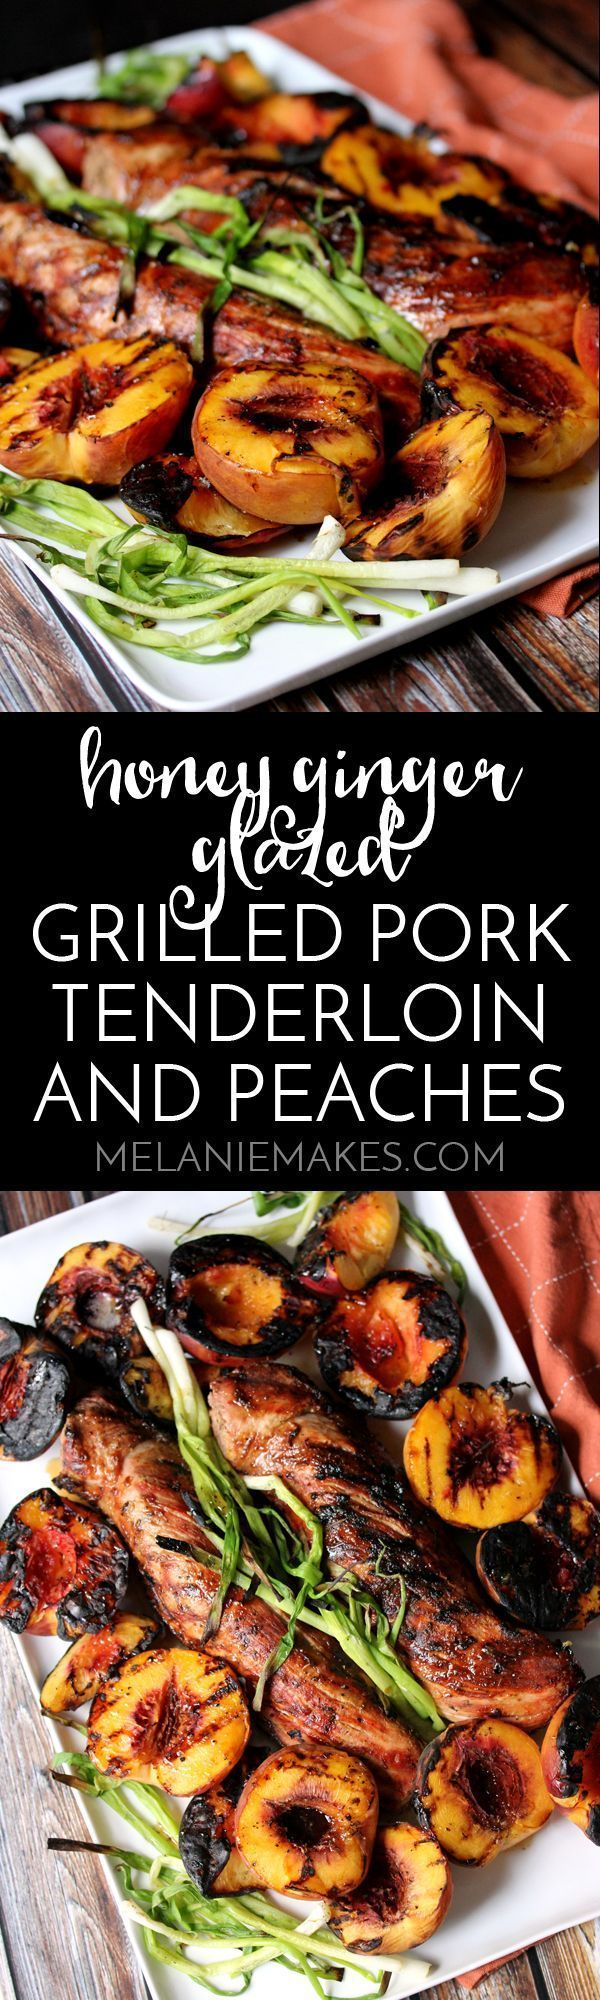 This Honey Ginger Glazed Grilled Pork Tenderloin and Peaches is the perfect sweet and savory dinner combinatio. A sticky, sweet honey glaze spiked with fresh ginger is drizzled over perfectly grilled pork tenderloin and charred green onions and peaches. A complete meal made entirely on the grill!